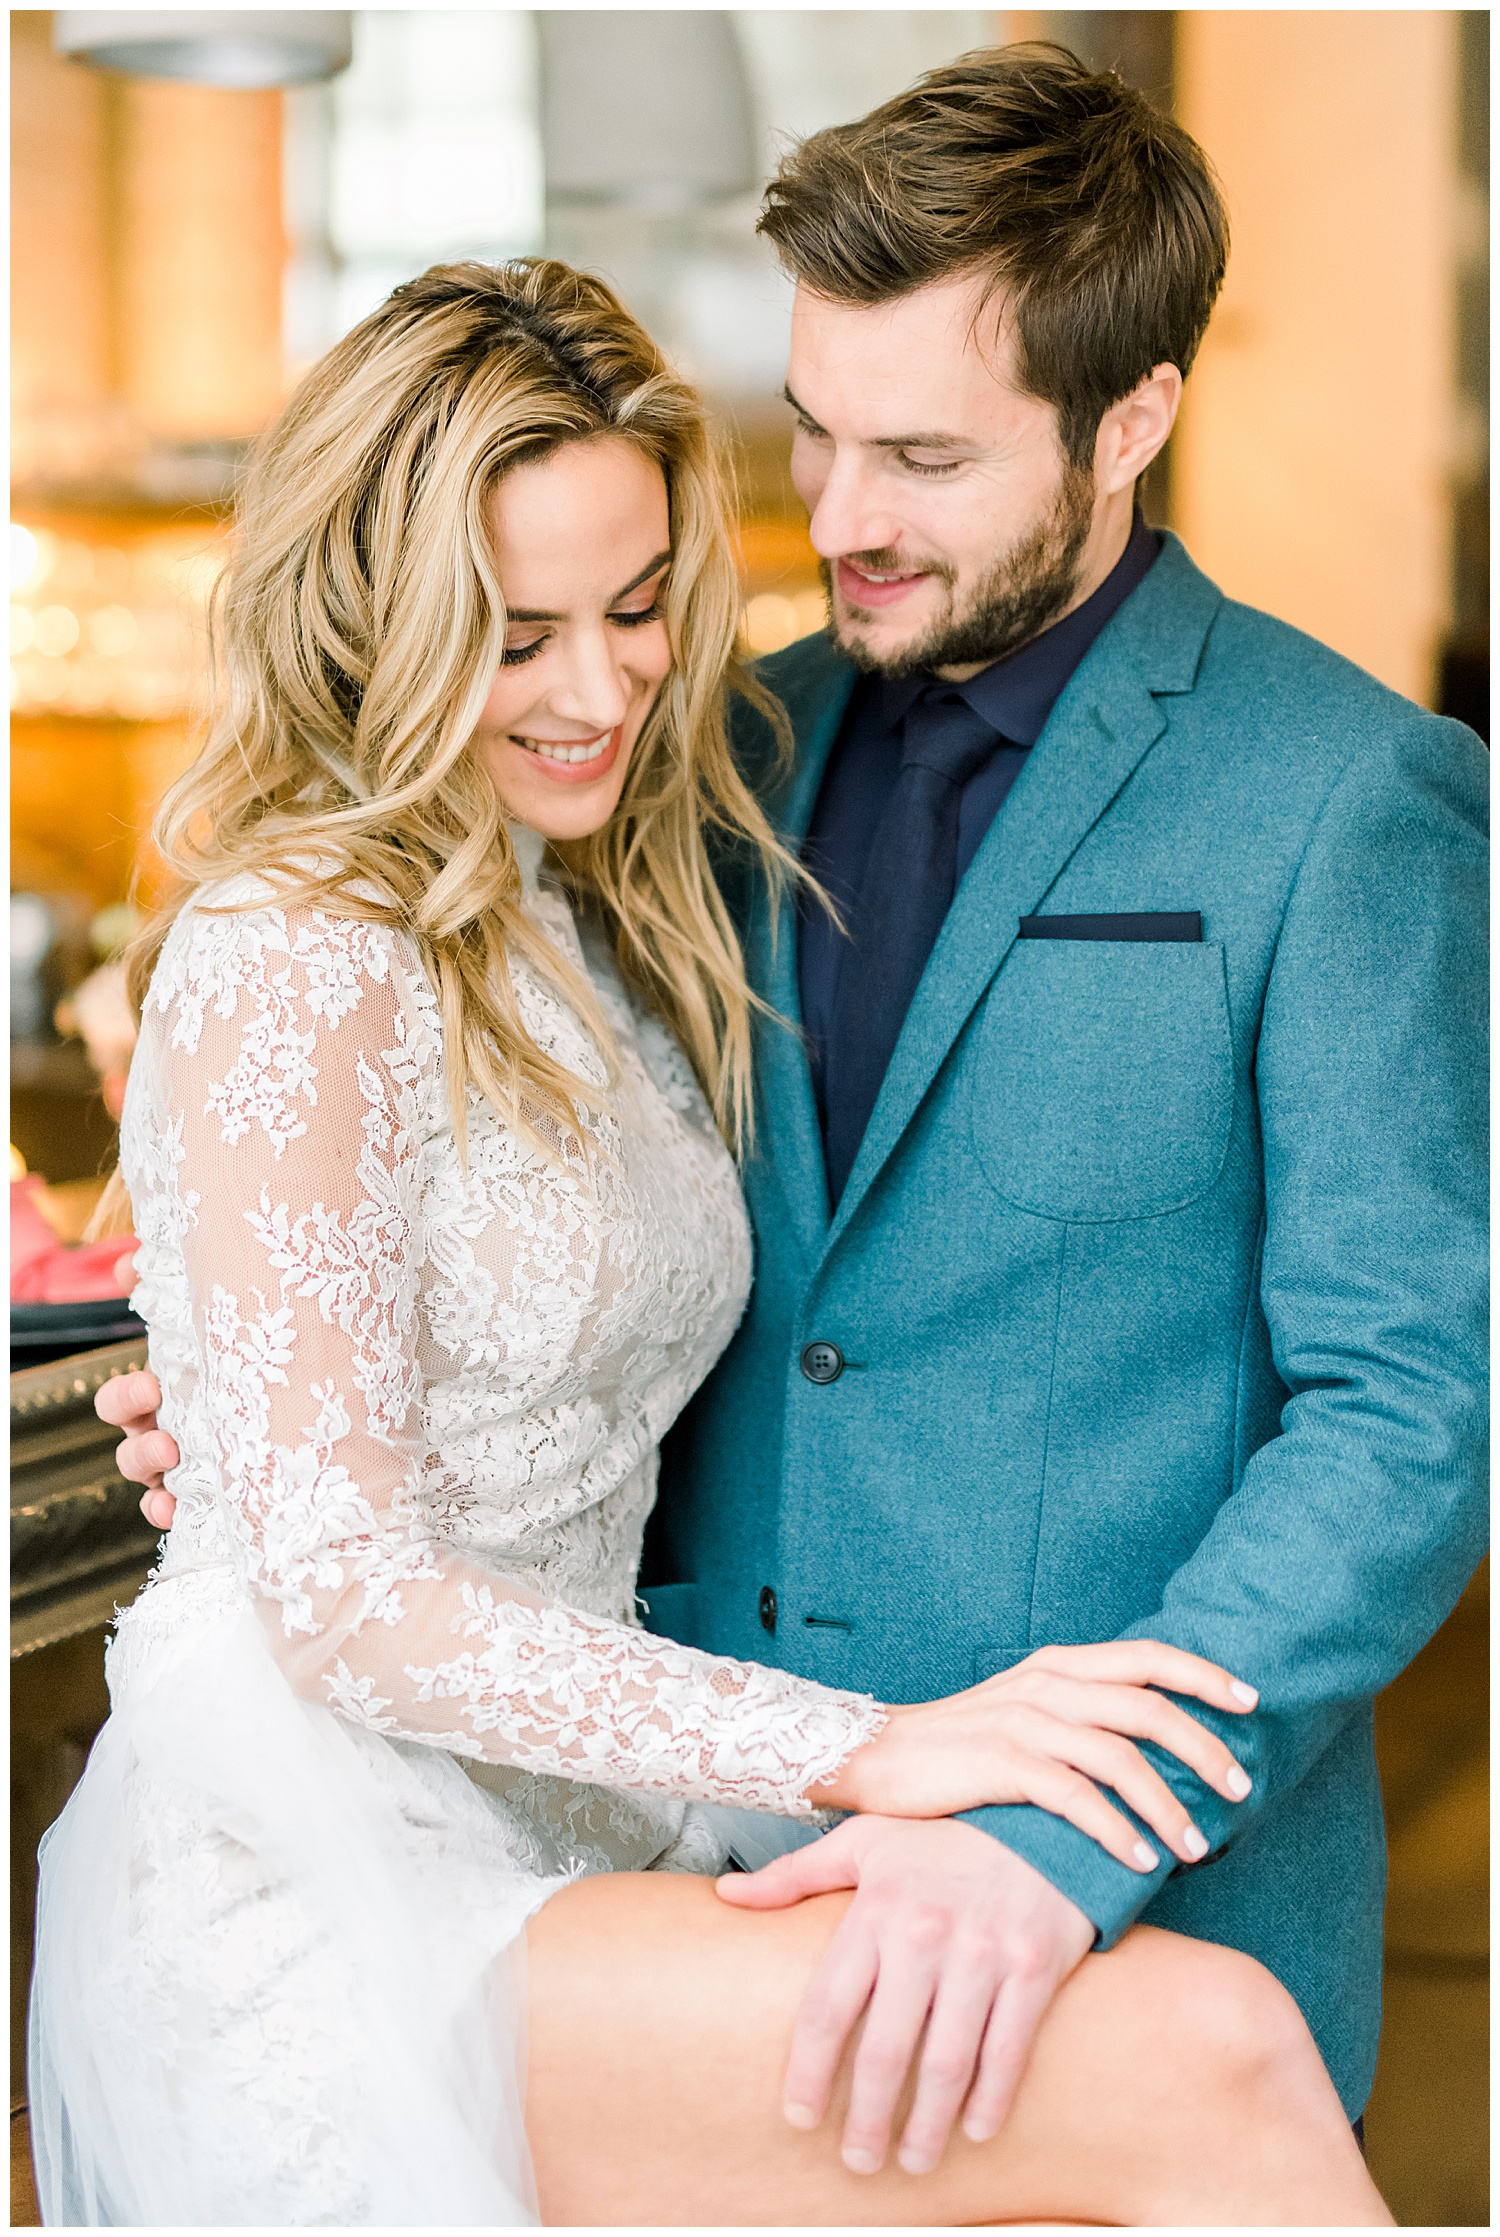 Janine_Licare_Photography_San_Francisco_Wedding_Photographer_Carneros_Tyge_Williams_Sonoma_Napa_0176.jpg